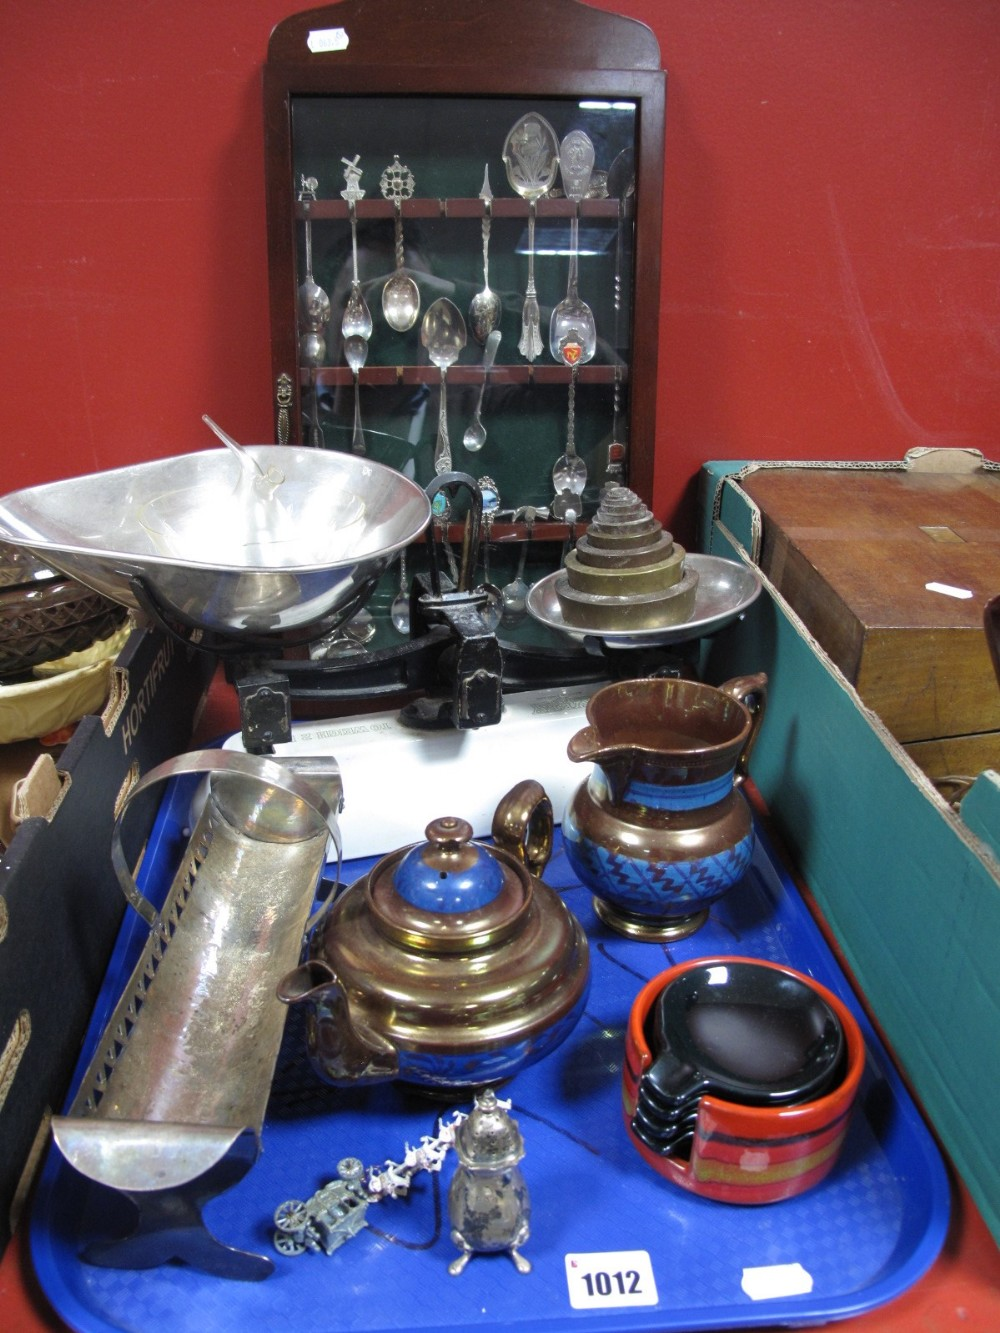 Lot 1012 - A Set of 2lb Avery Scales with Weights, silver hallmarked pepperette, Victorian copper lustre jug